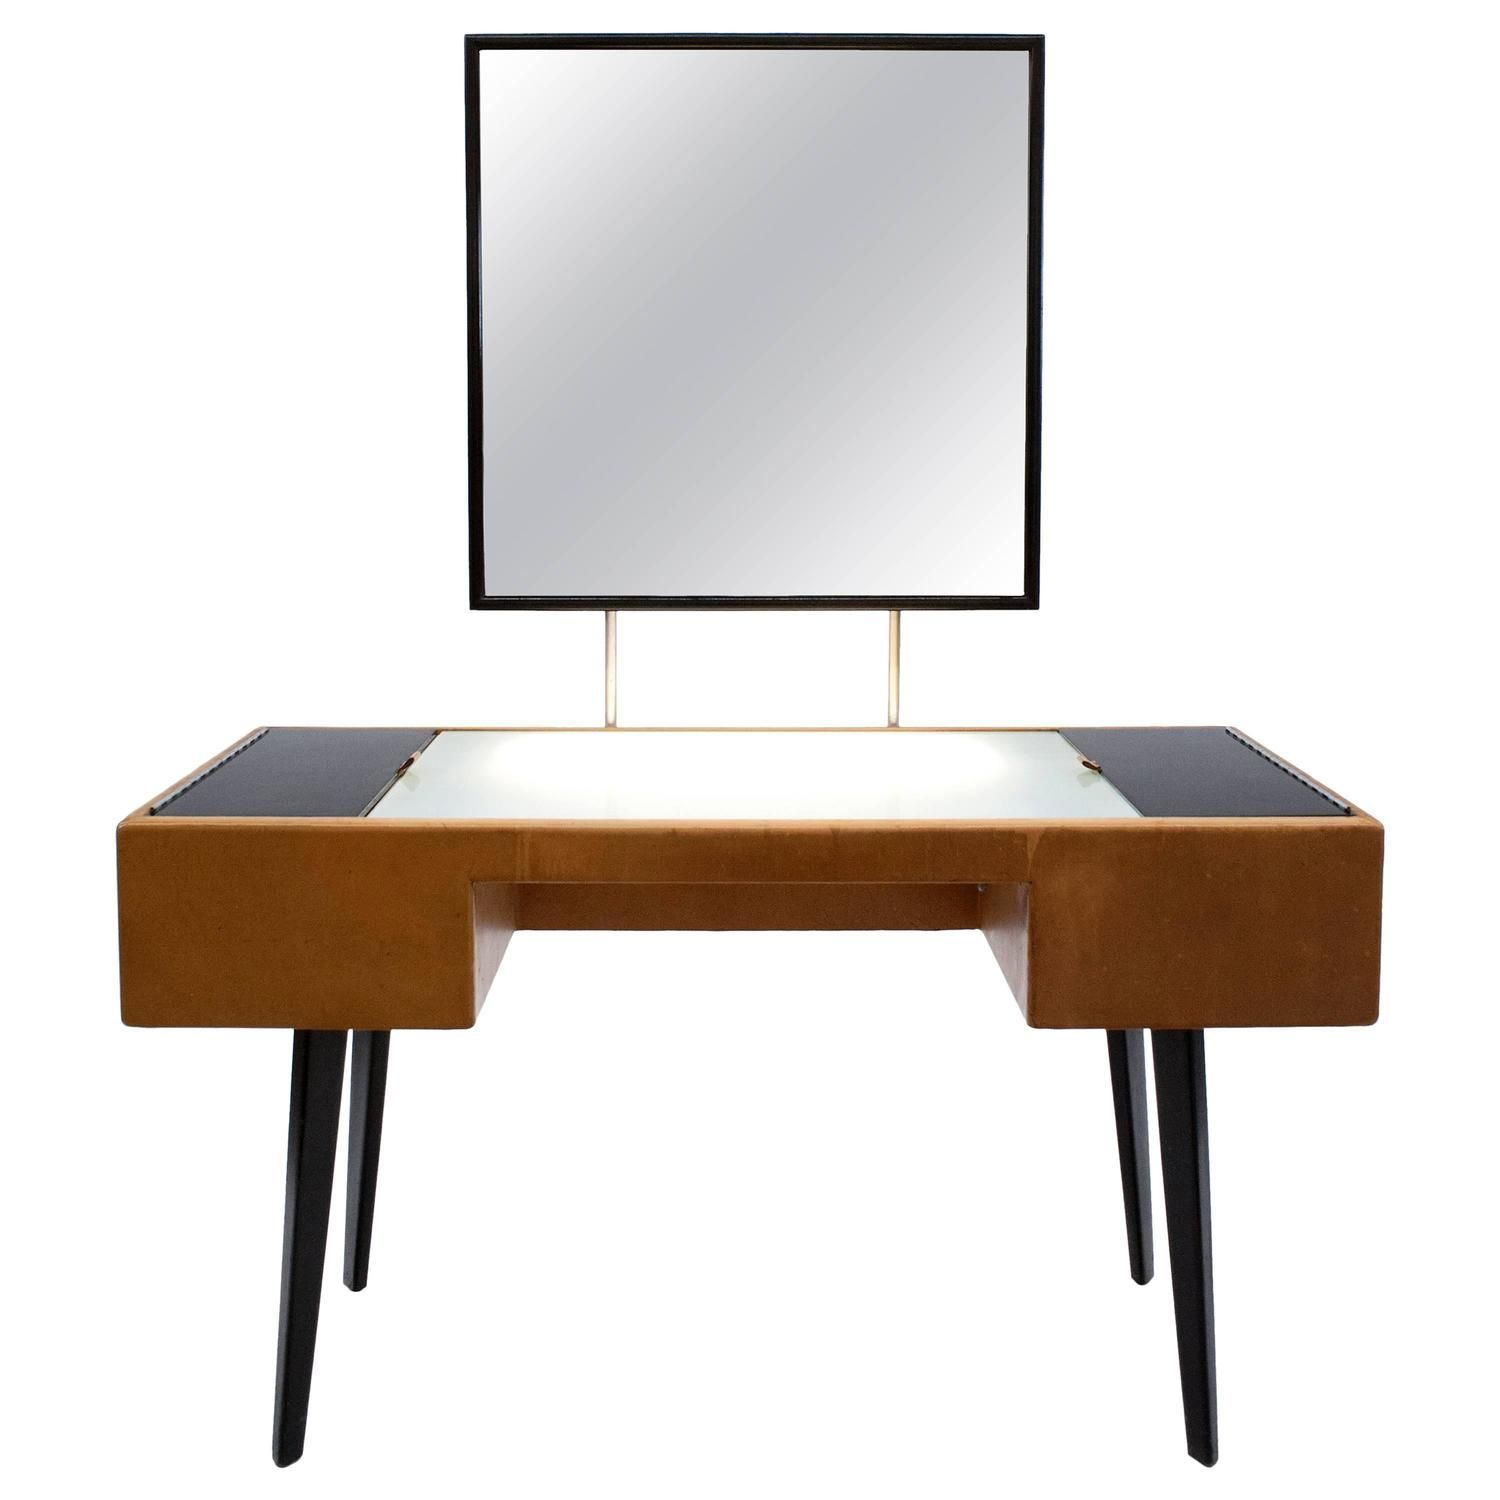 Rare George Nelson Illuminated Vanity Model 4660 with Mirror for